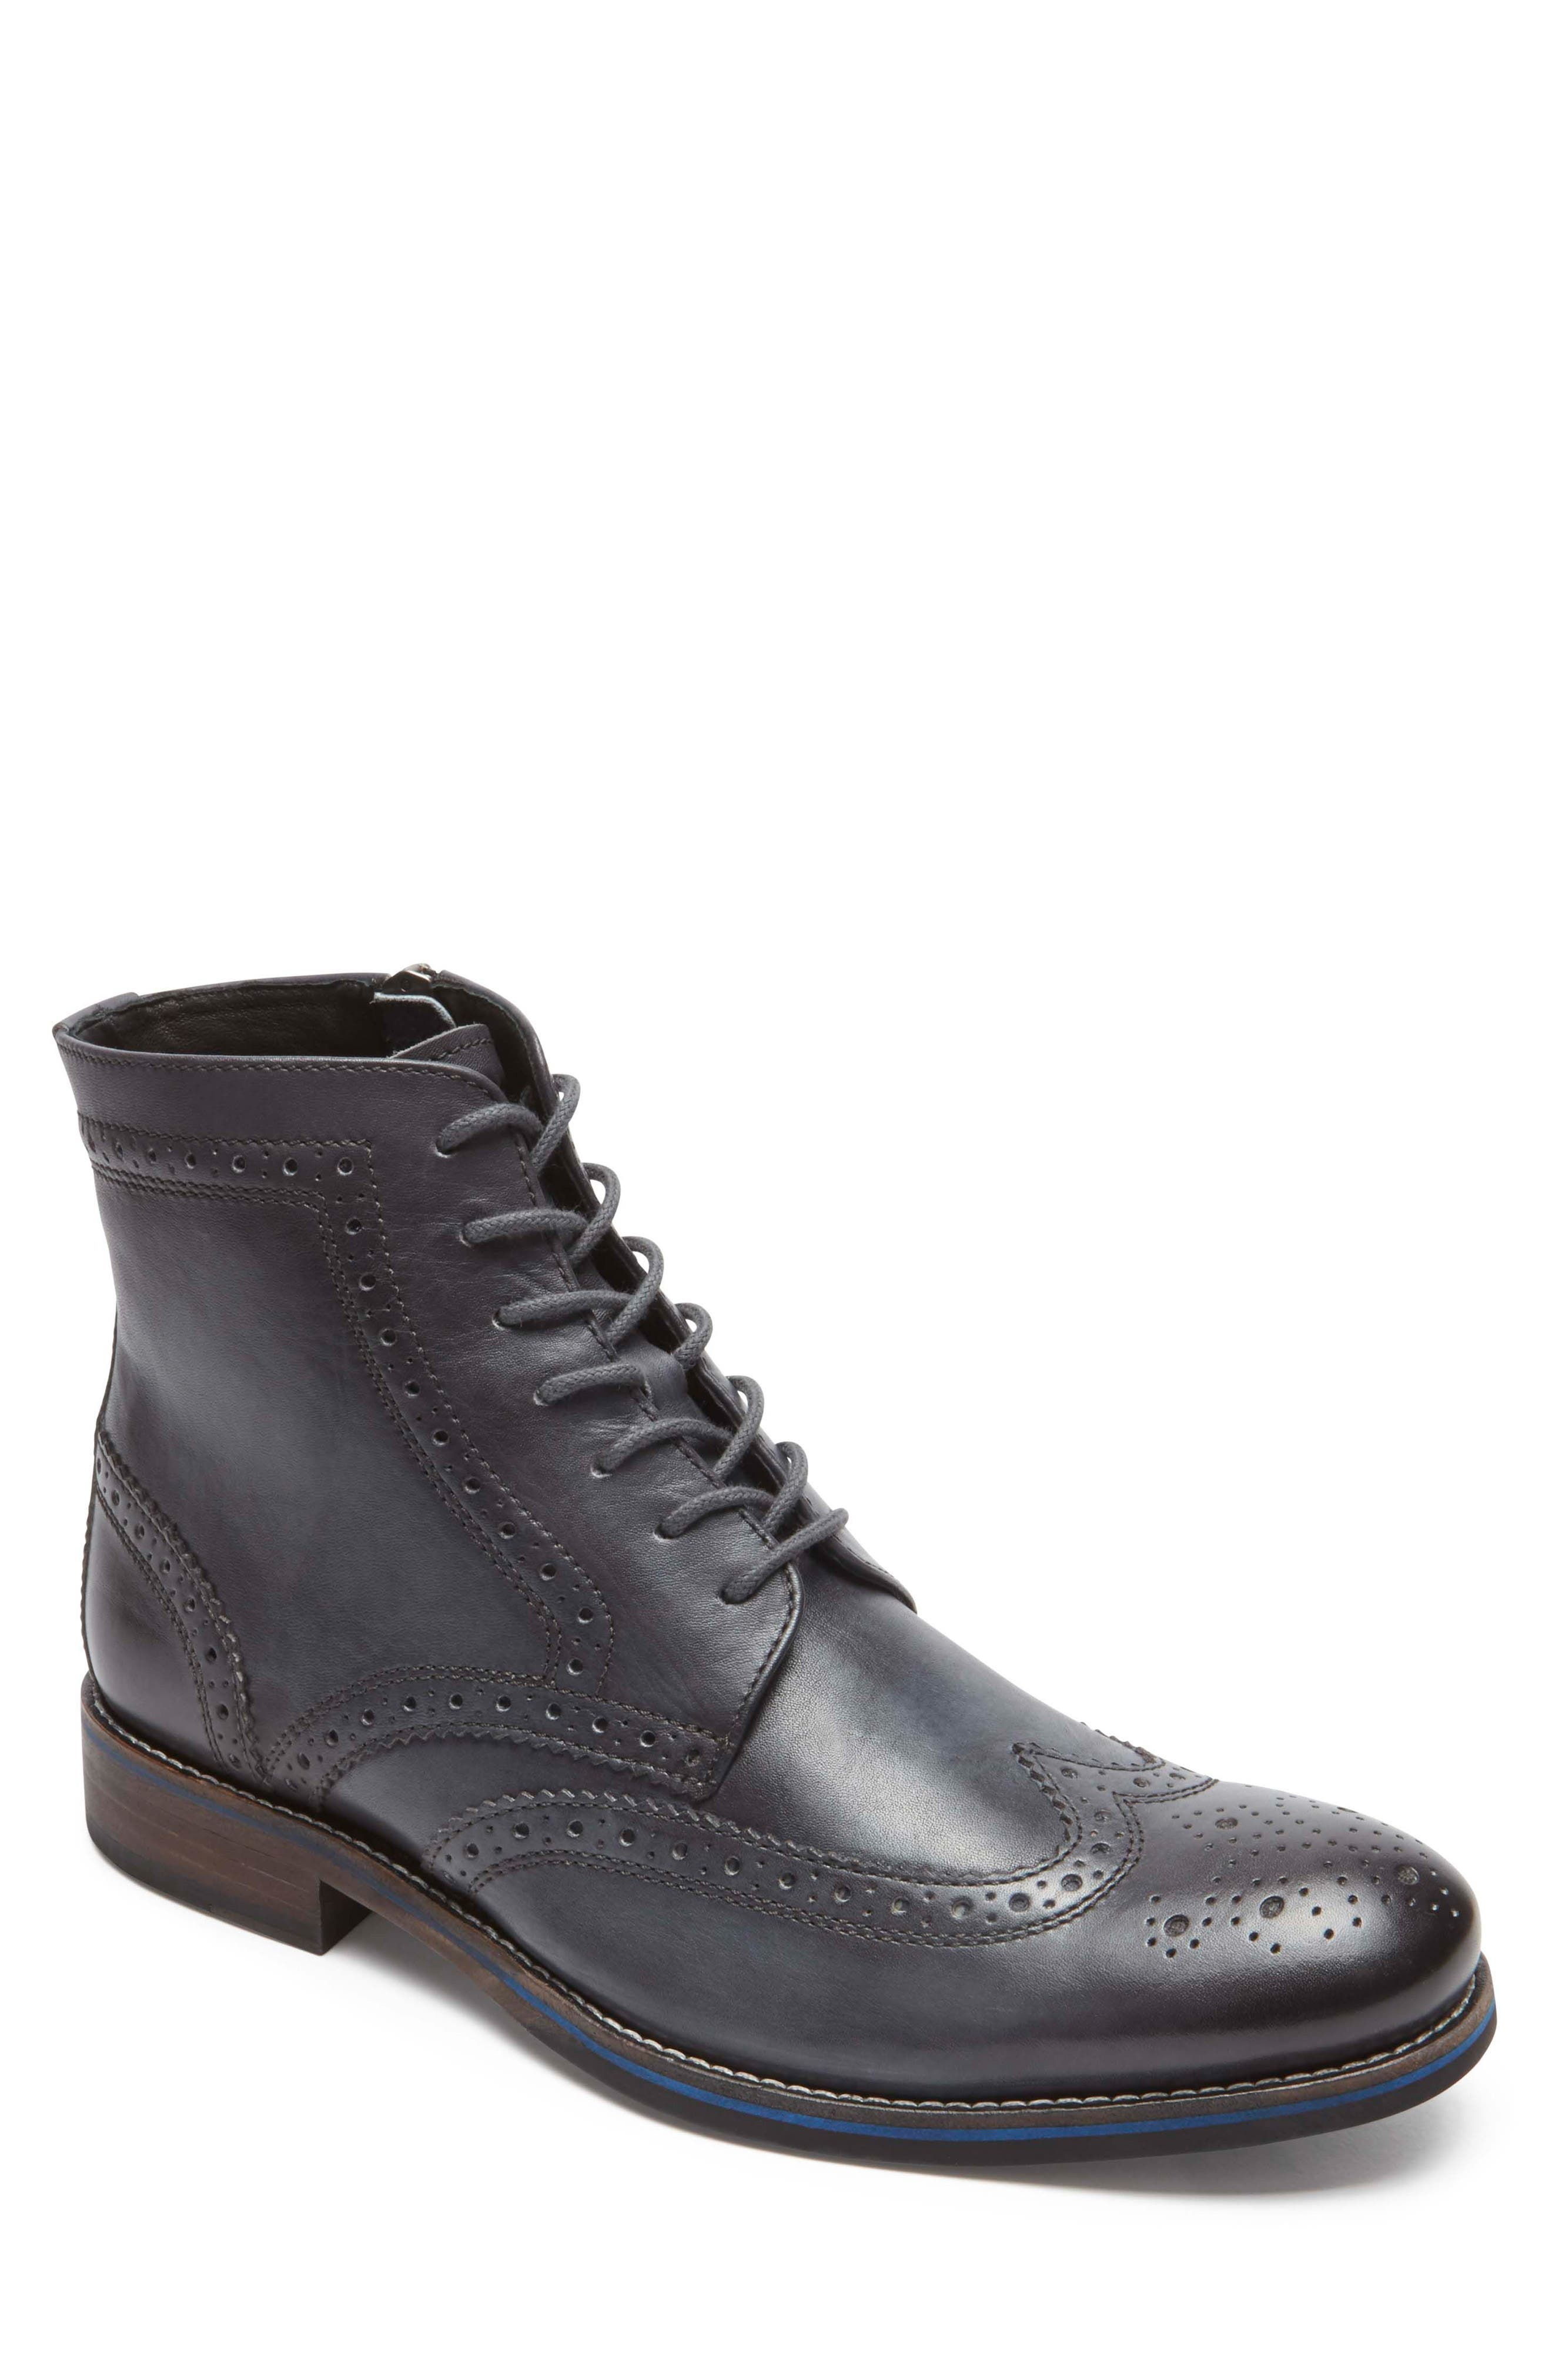 Wyat Wingtip Boot,                             Main thumbnail 1, color,                             Dark Shadow Leather